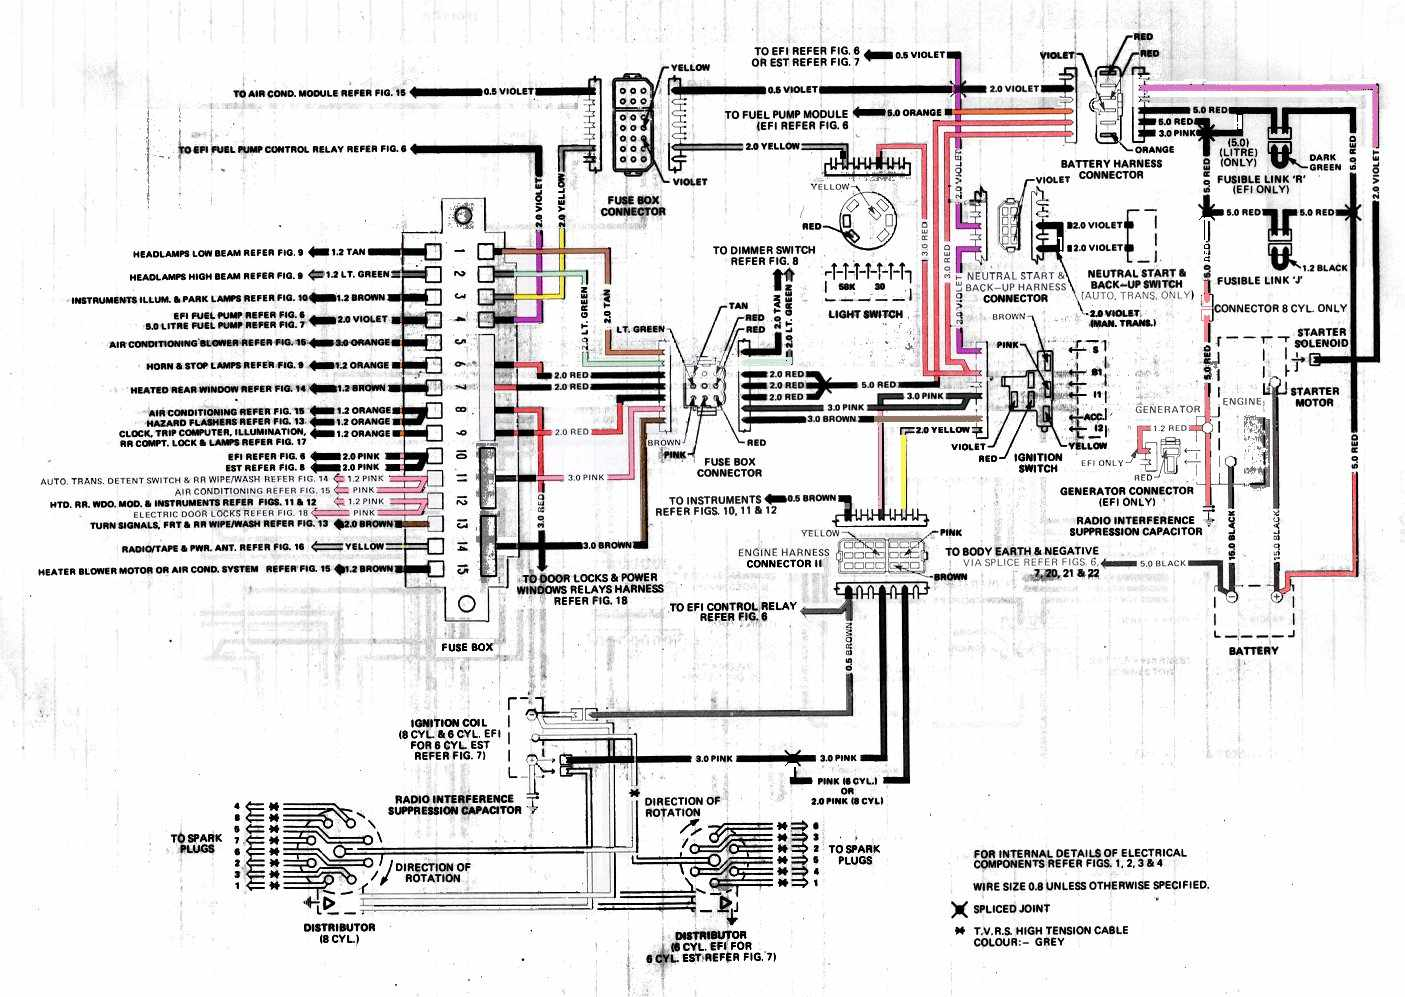 Vs Calais Stereo Wiring Diagram 2005 Mazda 6 Vehicle Wiring Harness Diagram Bonek Tukune Jeanjaures37 Fr